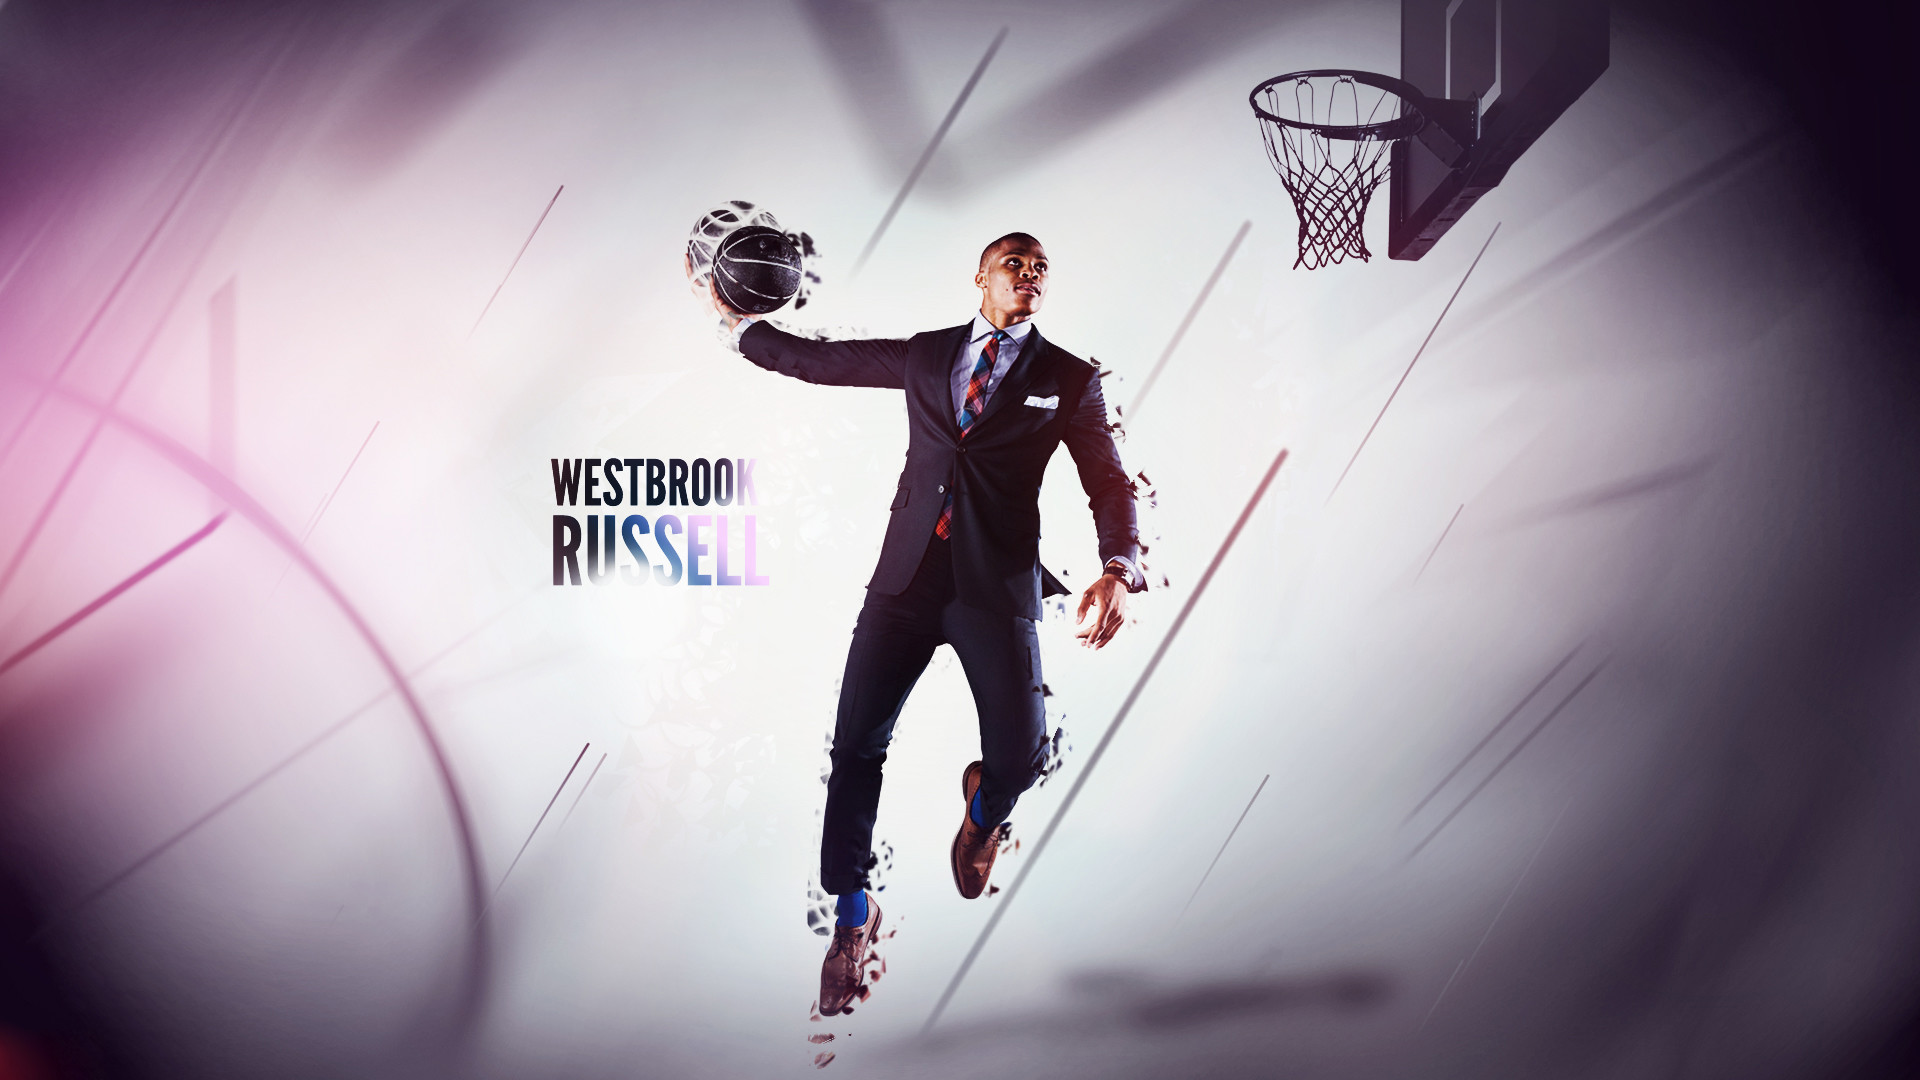 Russell westbrook wallpaper hd 78 images 1920x1080 best russell westbrook wallpaper hd voltagebd Image collections